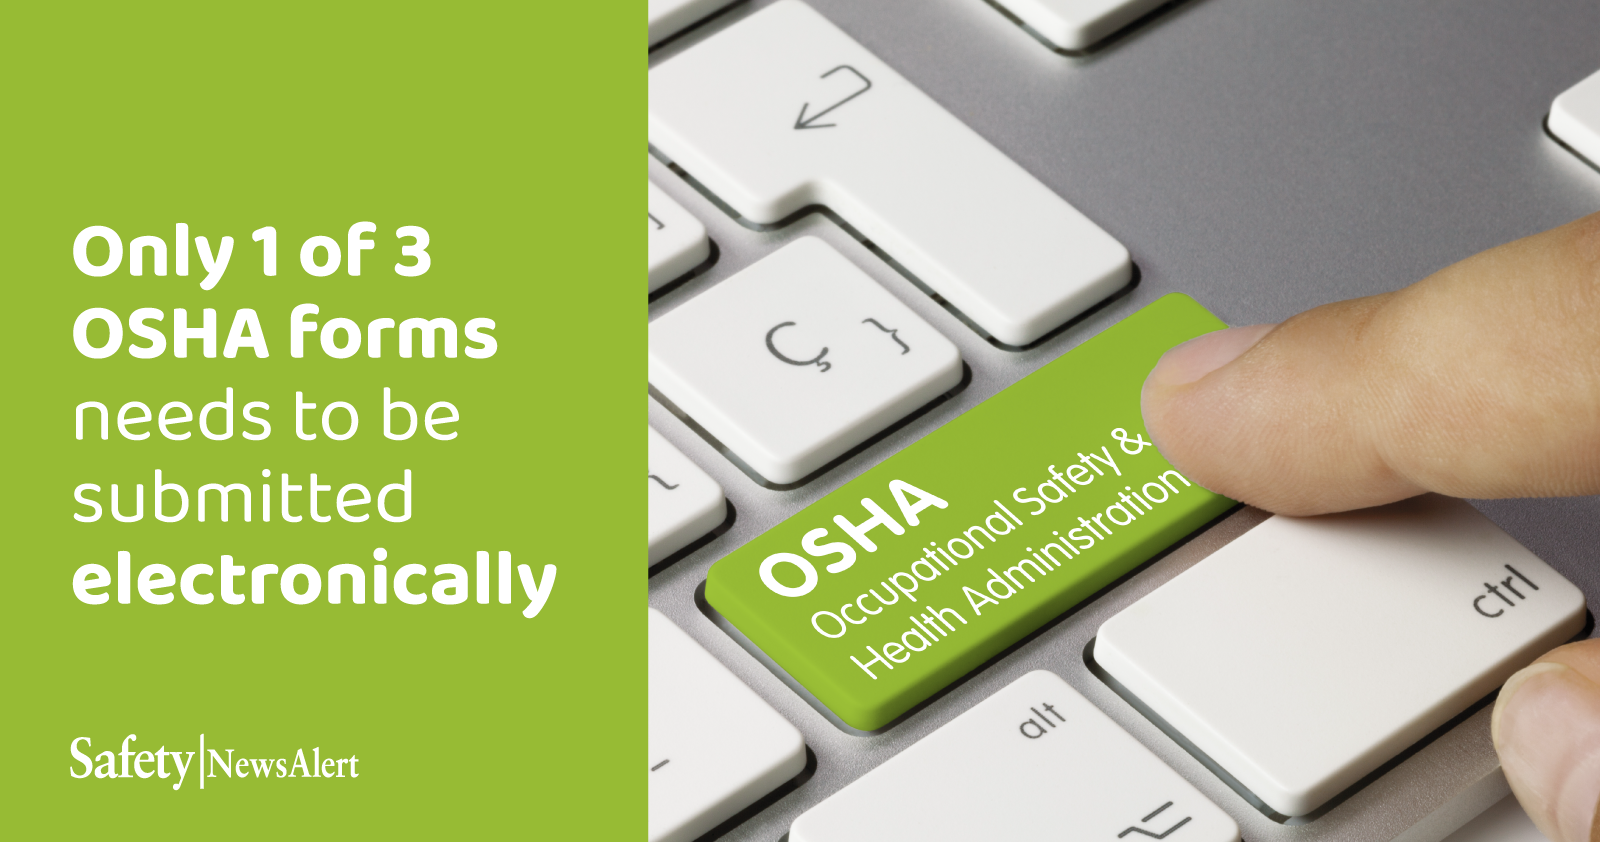 only 1 of 3 OSHA forms needs to be submitted electronically